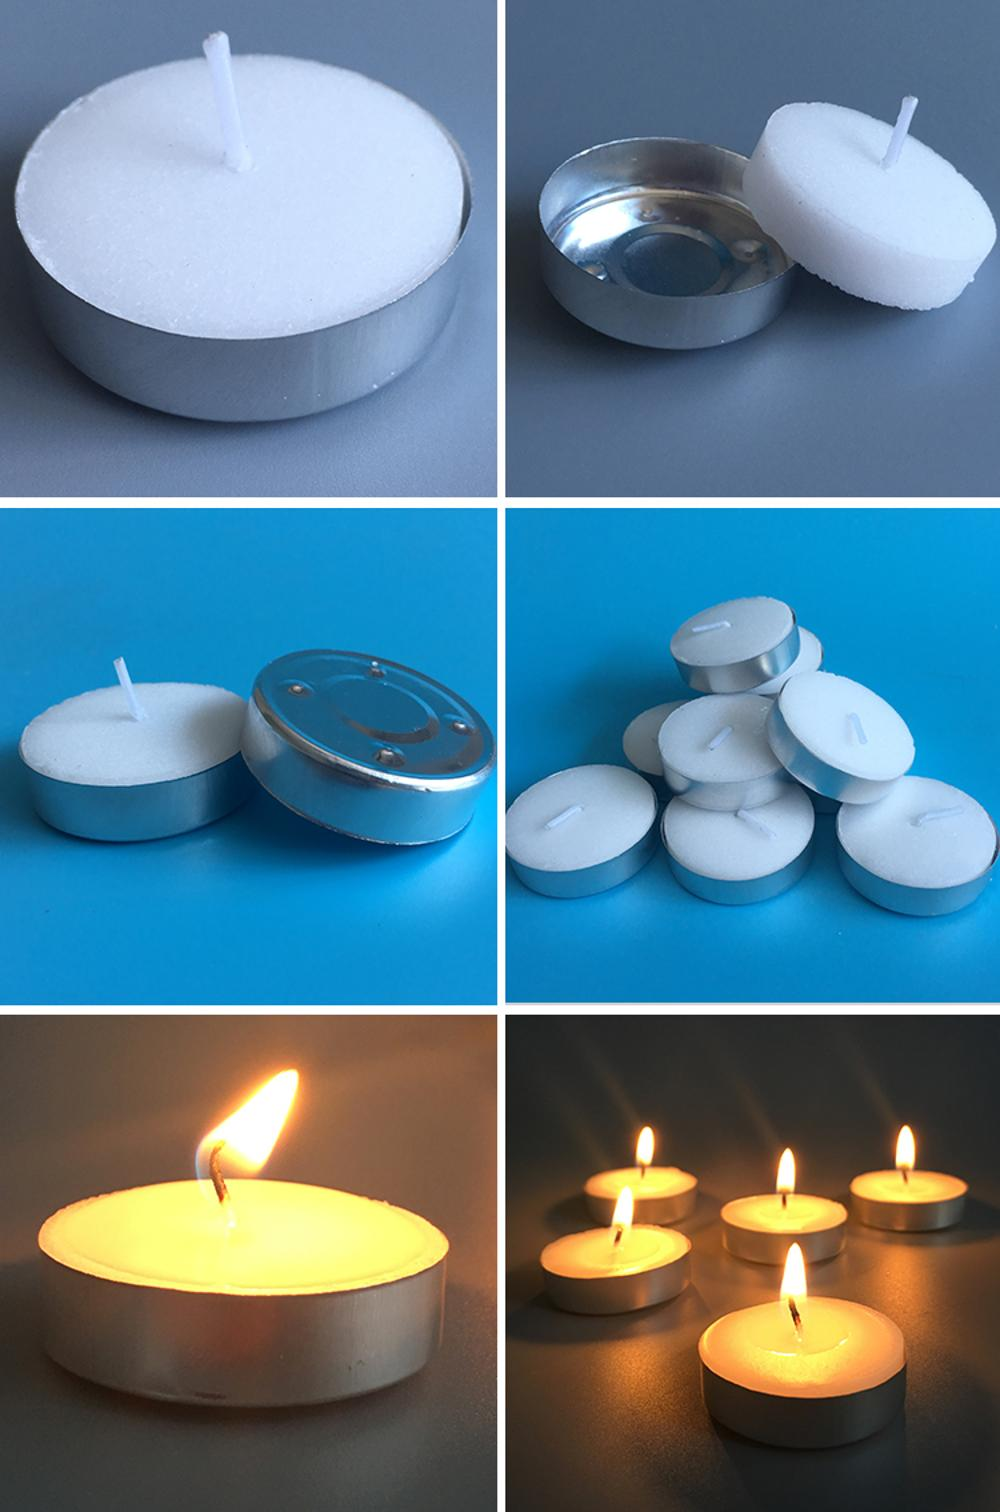 4-4.5 Hours Tealight Candle